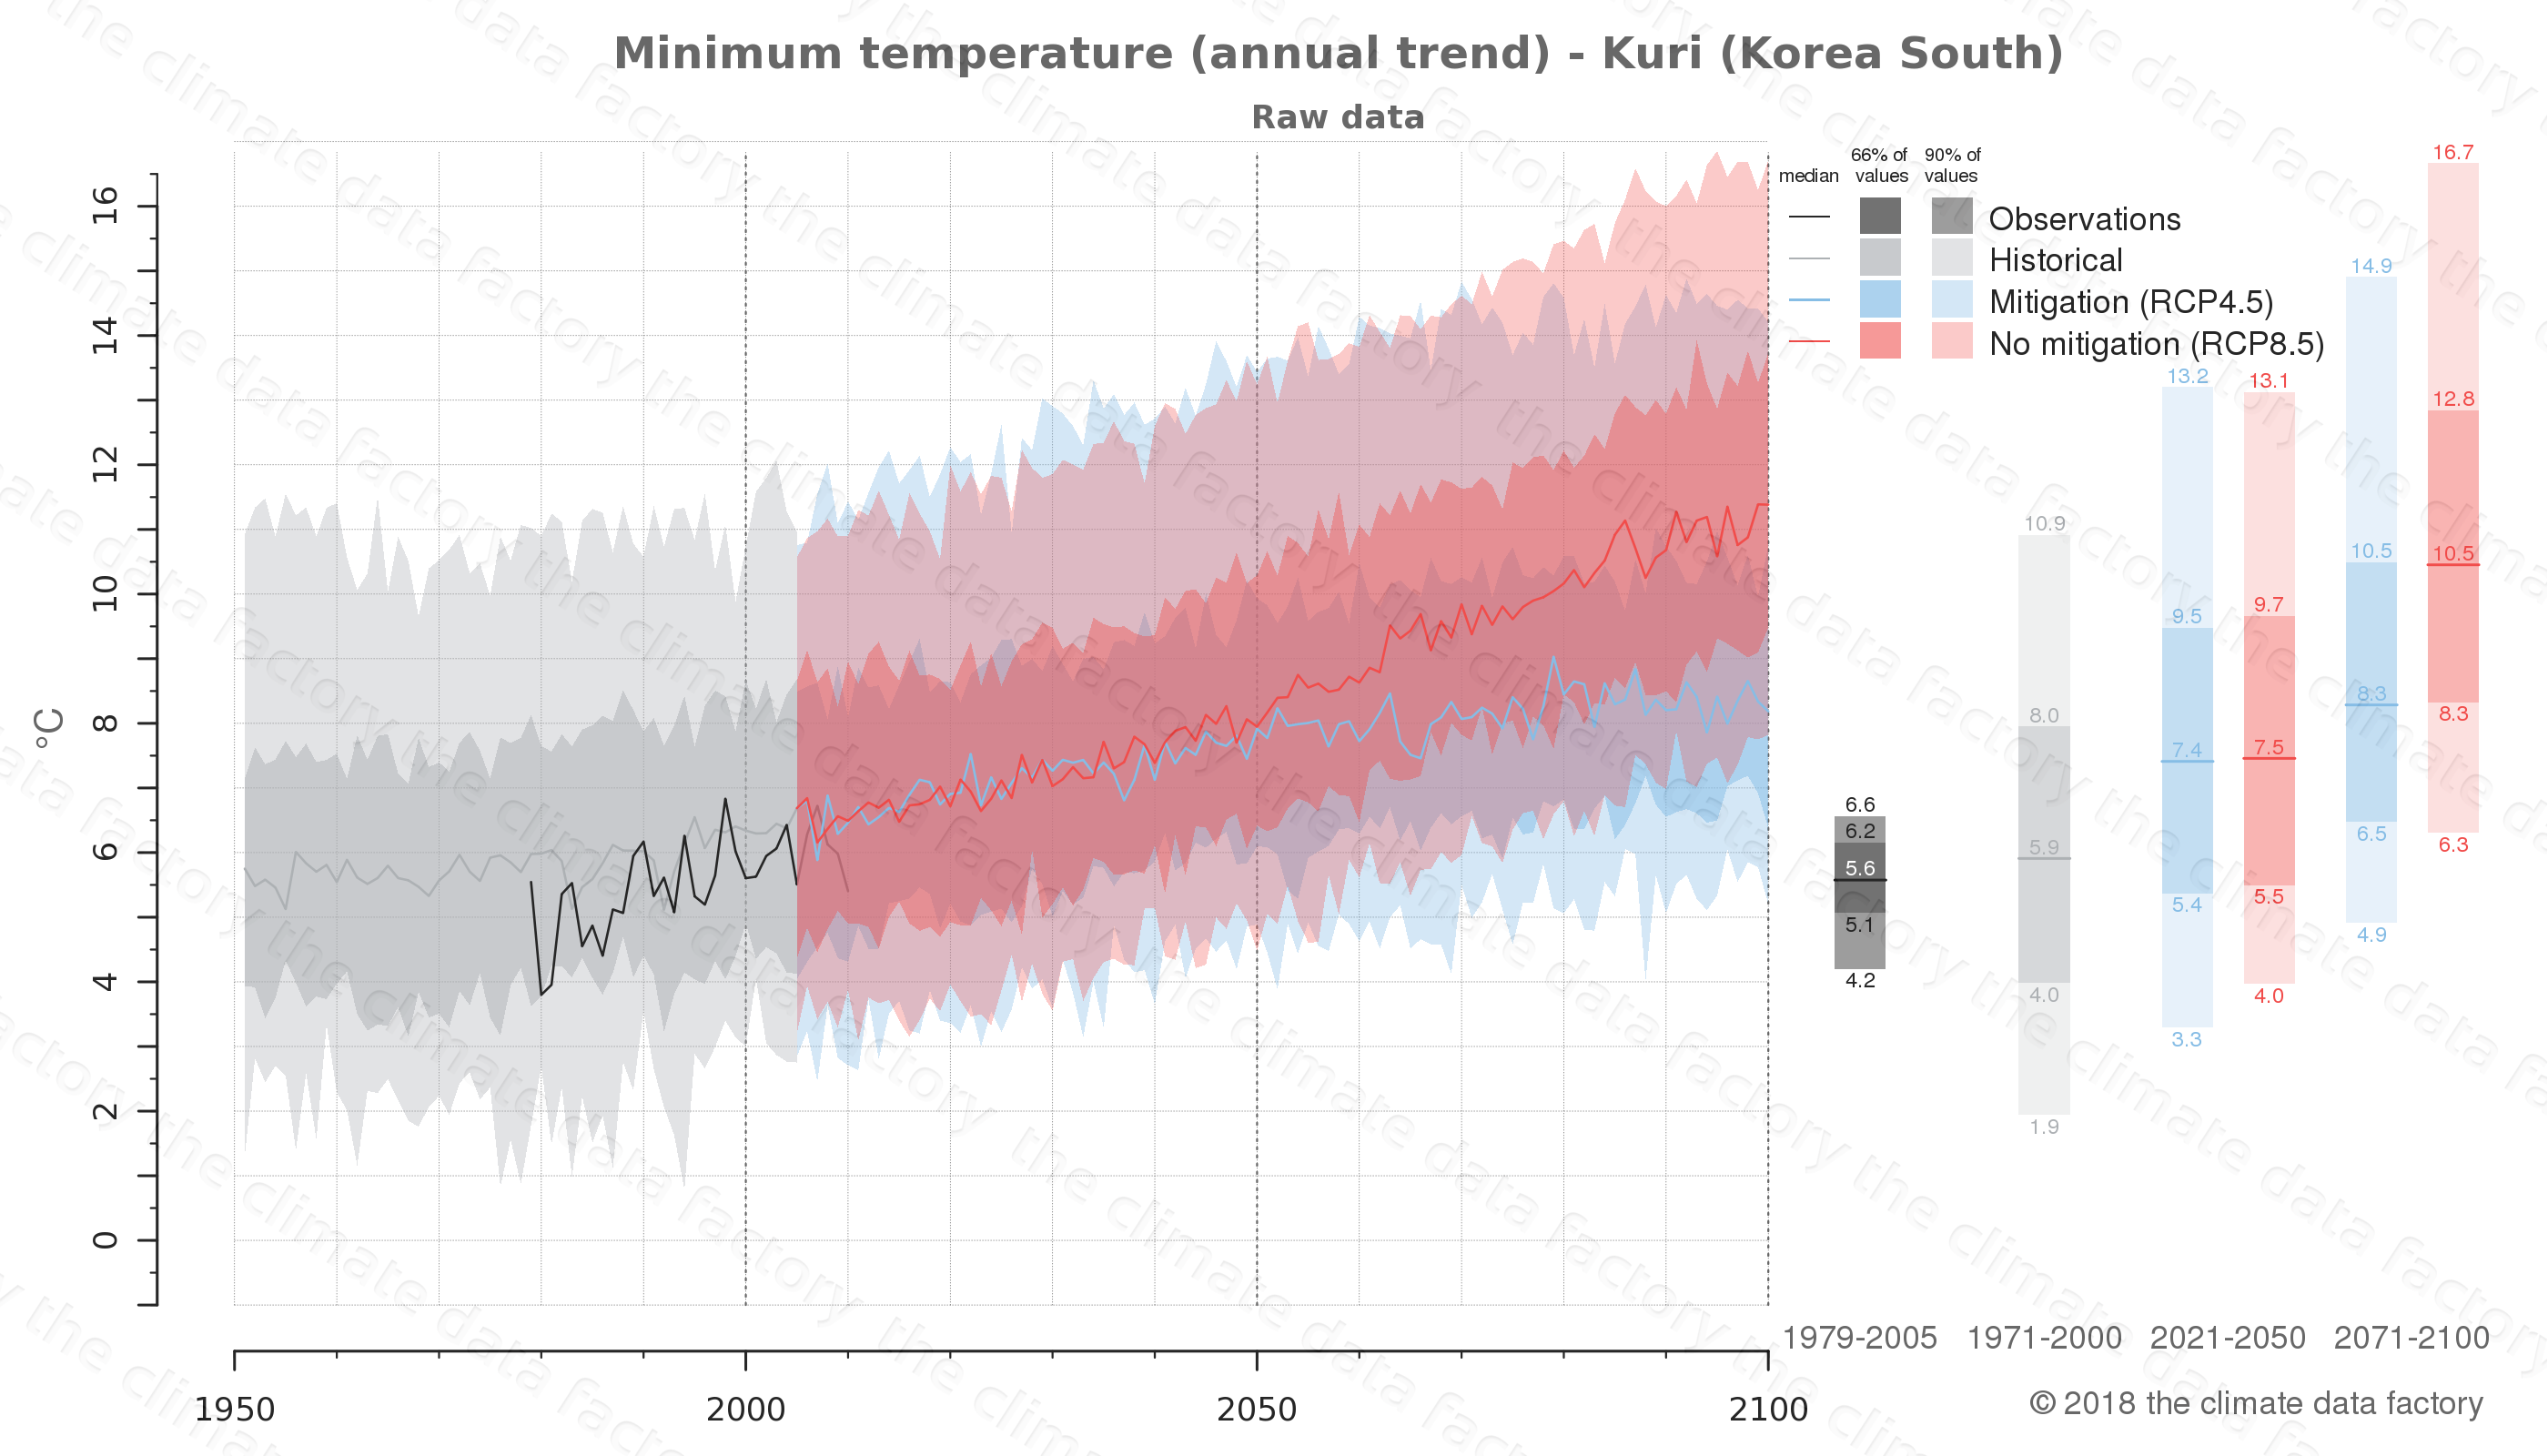 climate change data policy adaptation climate graph city data minimum-temperature kuri south korea